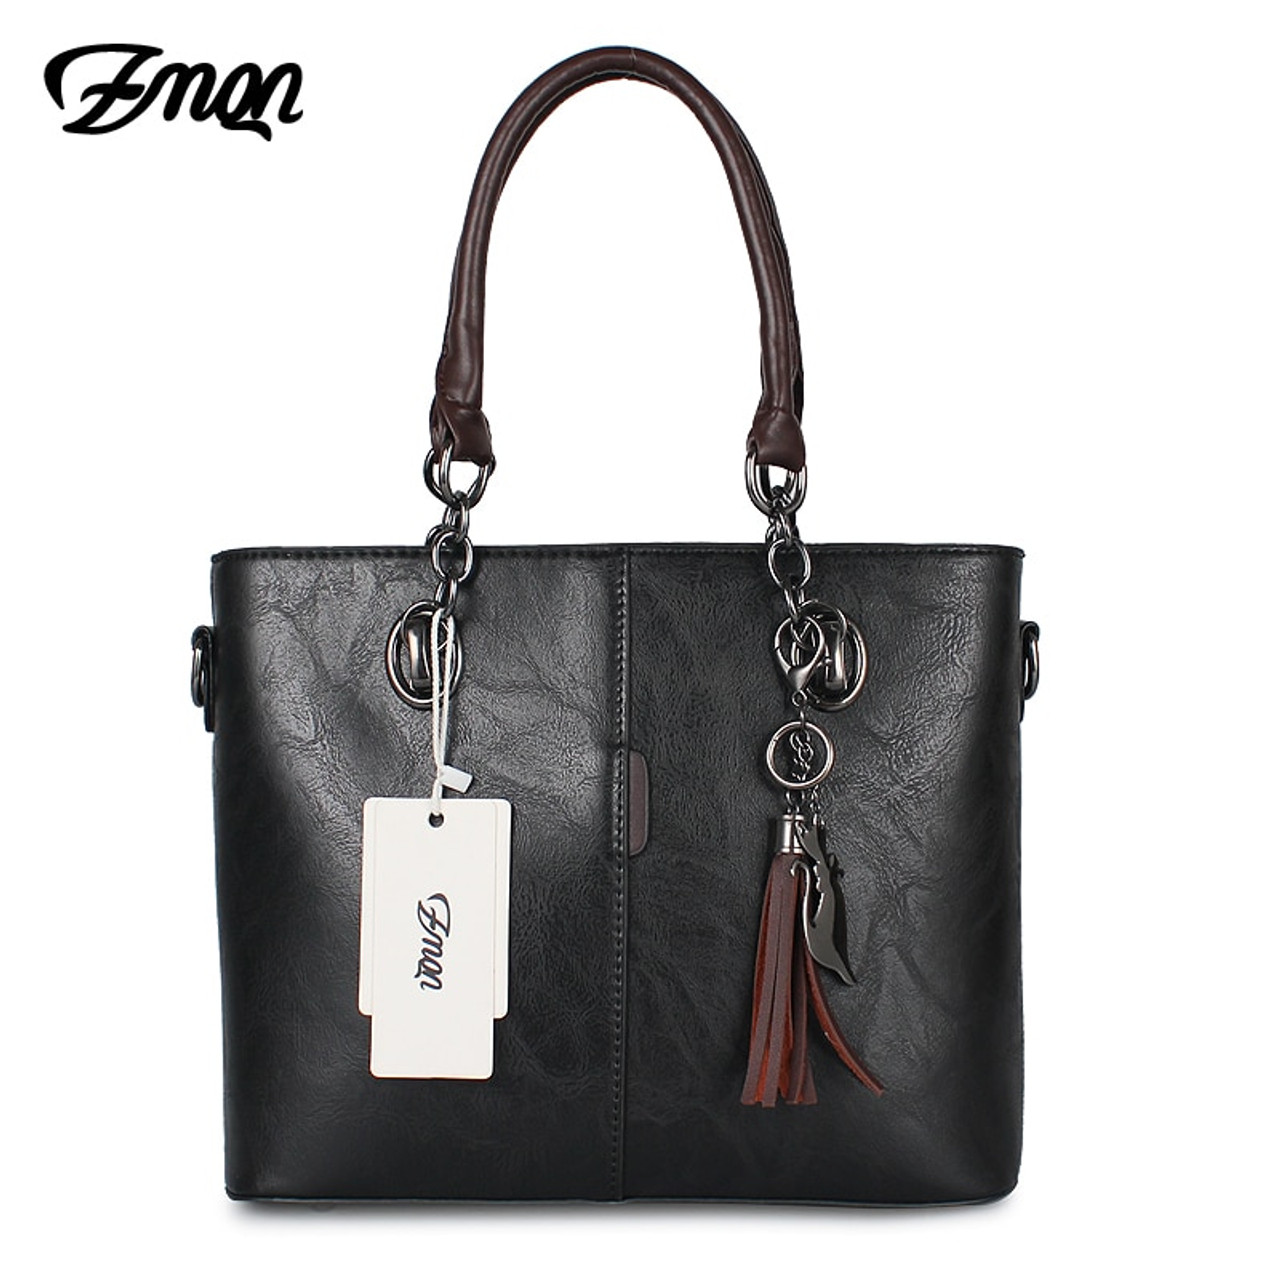 11c5893ab2c ZMQN Luxury Handbags Women Bag Designer 2018 Big Ladies Hand Bag For Women  Solid Shoulder Bag Outlet Europe Leather Handbag C641